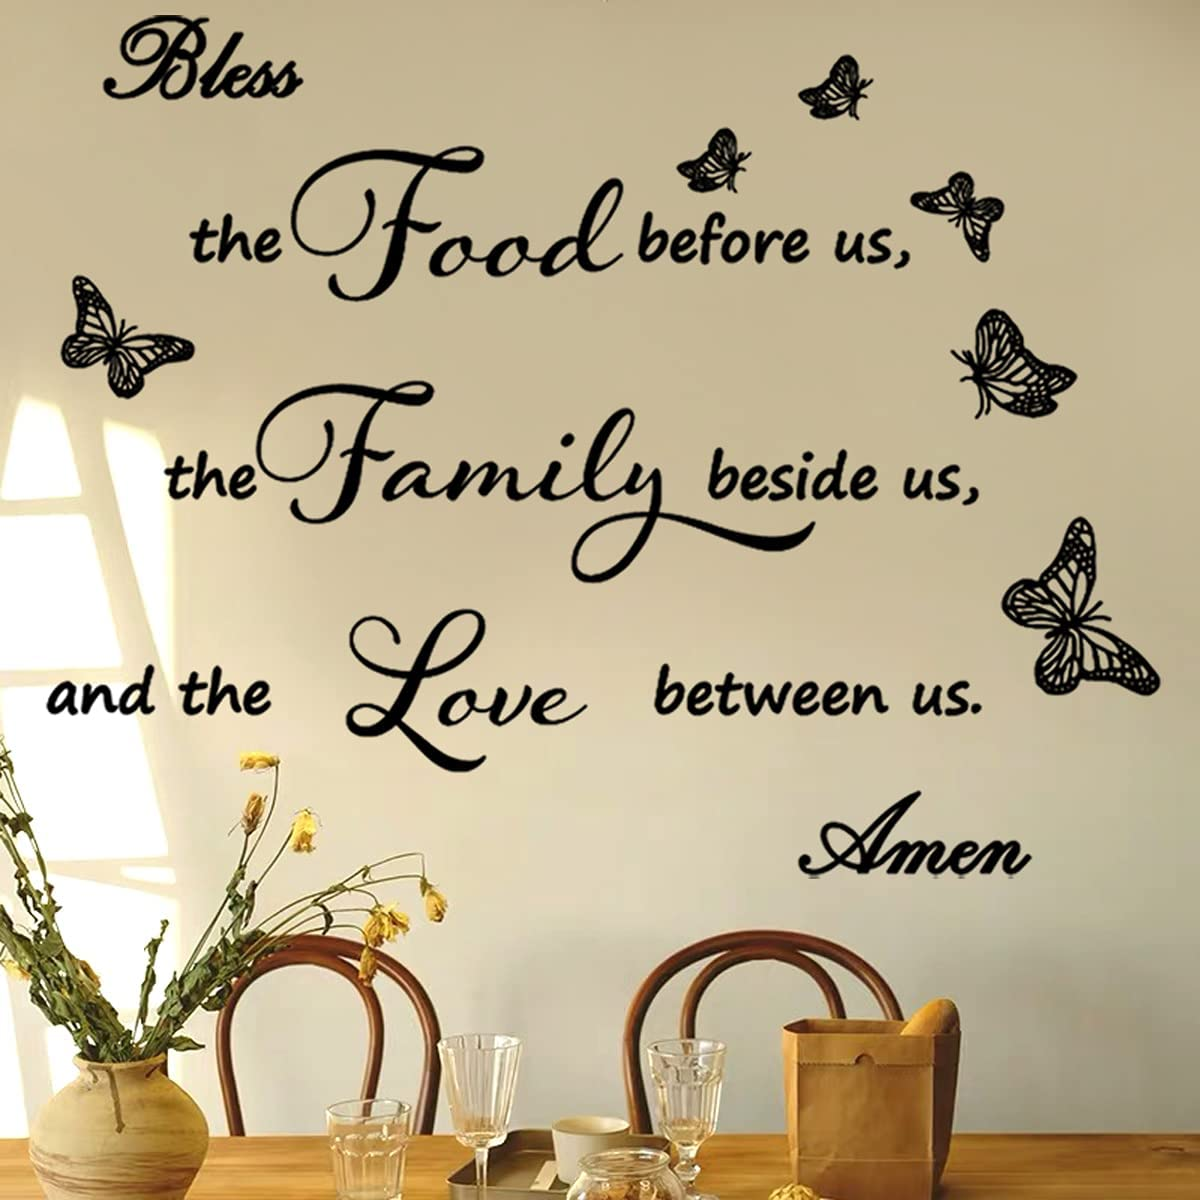 Wall Sticker Family Love Positive Quote Bless This Food Before Us The Family Beside Us and The Love Between Us Wall Decals for Living Room Kitchen Dining Room Prayer Wall Decor.